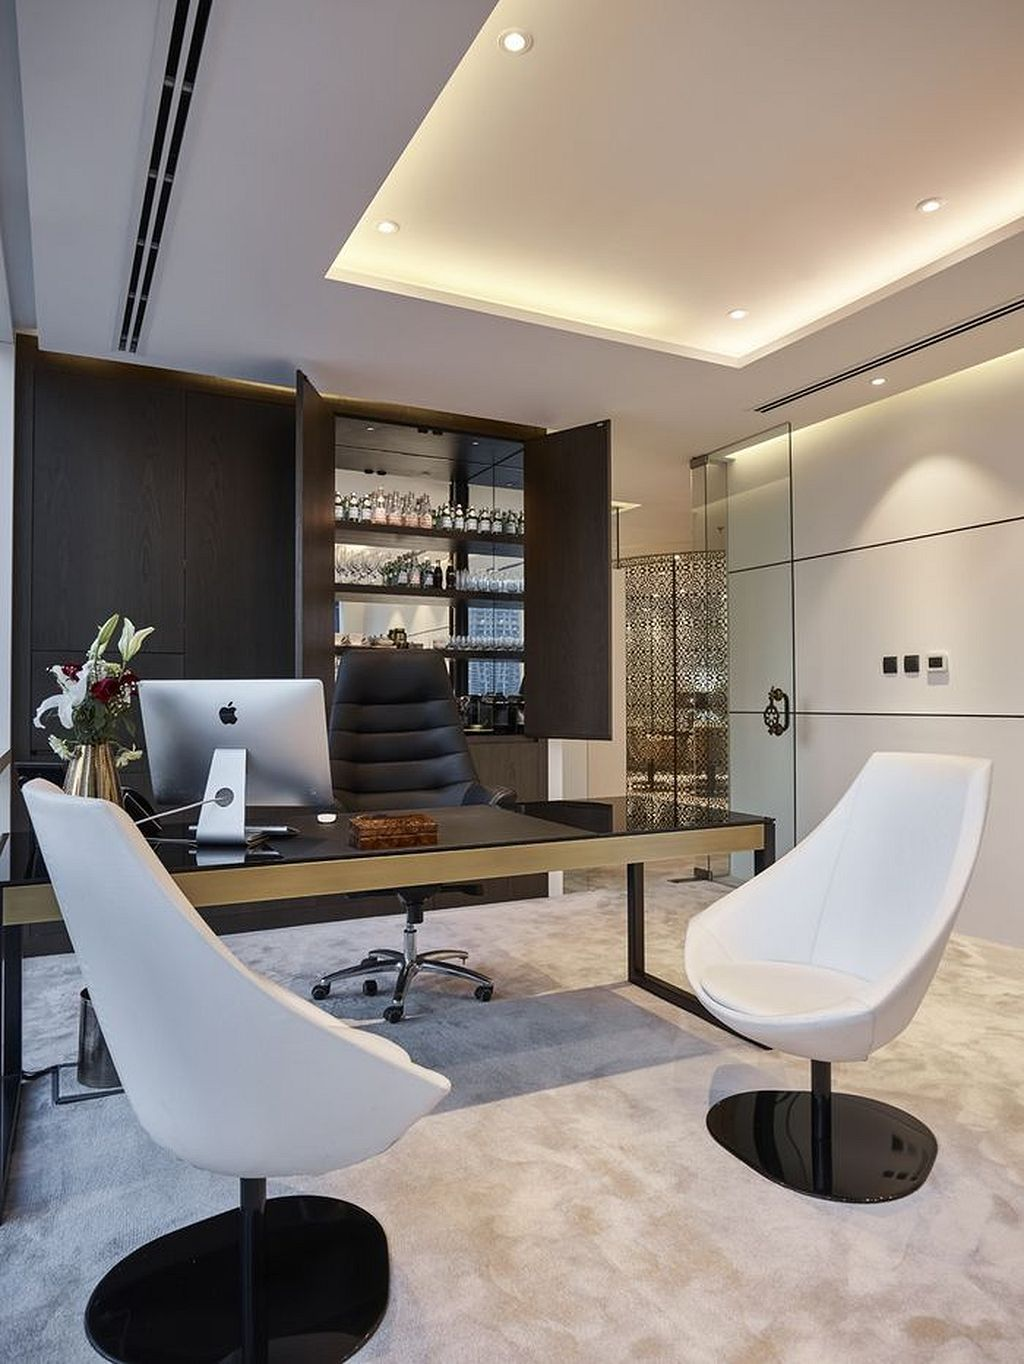 Exe office interior design modern decor home also best as well most innovative designs to have for your own rh pinterest